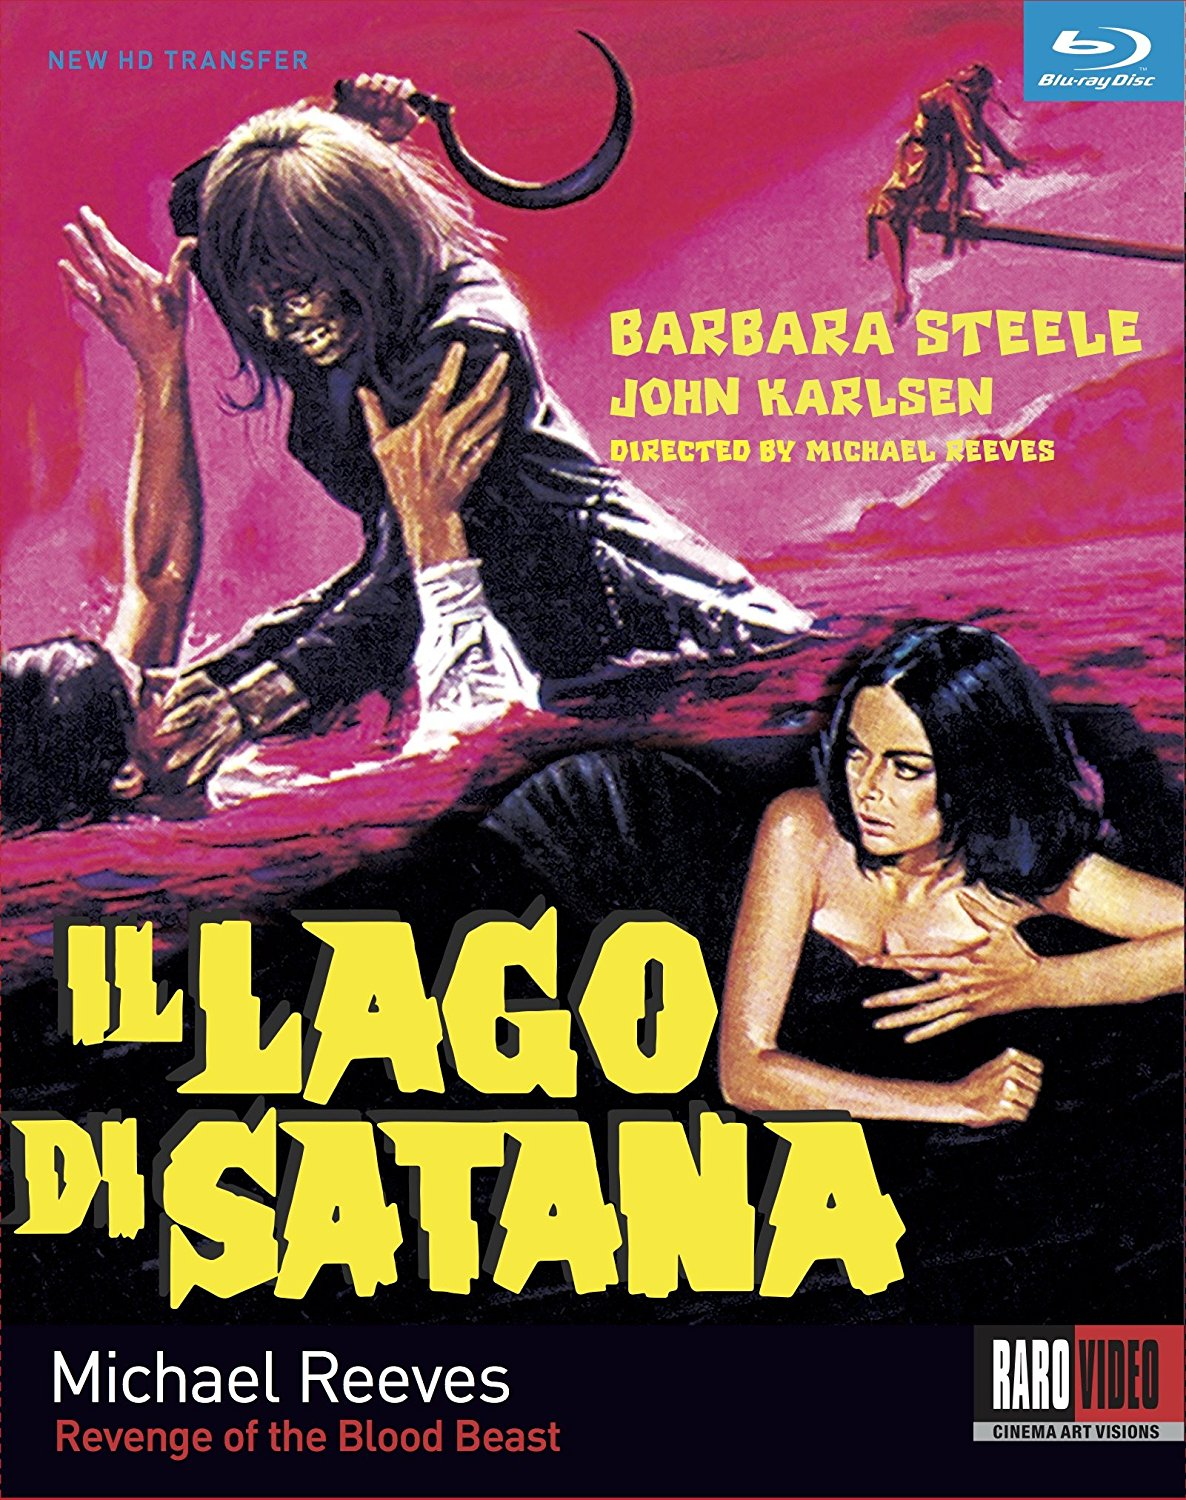 Revenge of the Blood Beast (1966) Blu-Ray announced by Raro Video and Kino Lorber